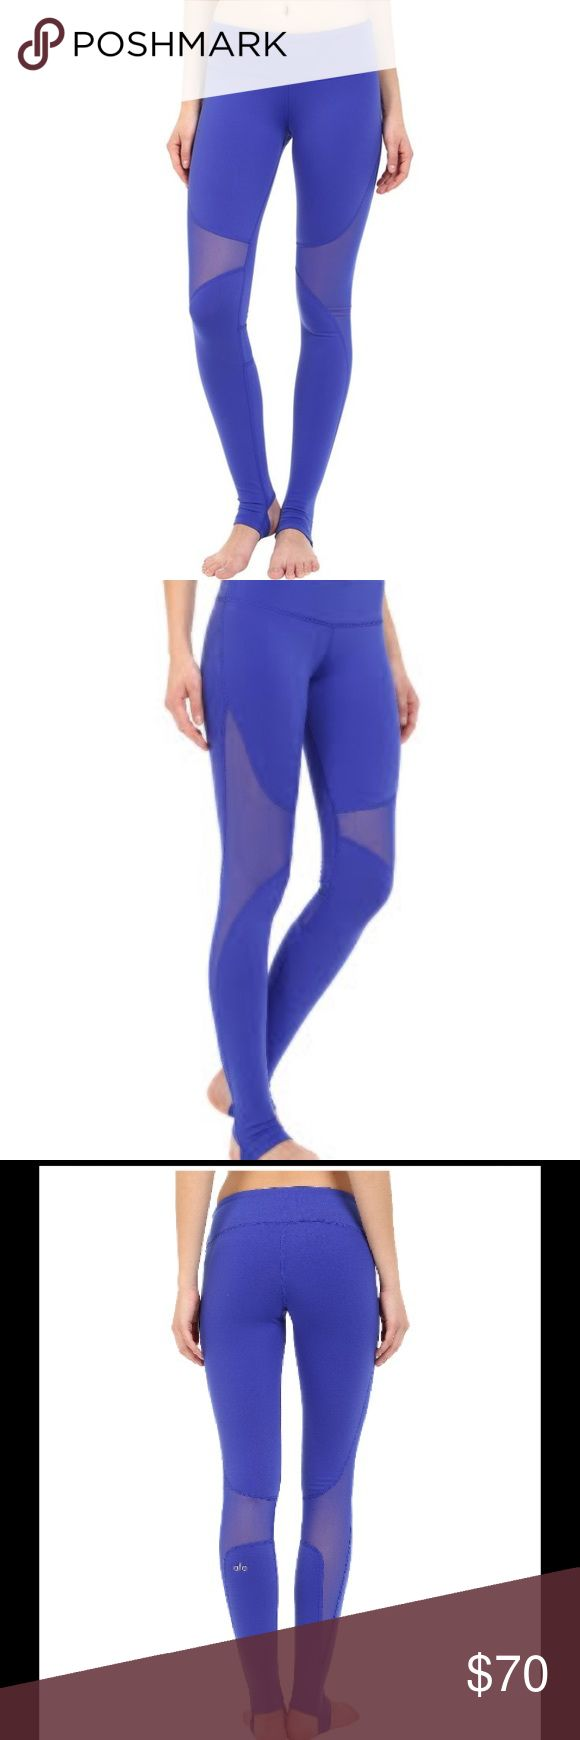 Alo Coast Legging - Blue The Coast Legging offers secure coverage with stirrup foot detail, smooth seams and contemporary mesh blocking at side of leg and knee area. Twists and inversions don't stand a chance against it. Worn once. Excellent condition. ALO Yoga Pants Leggings